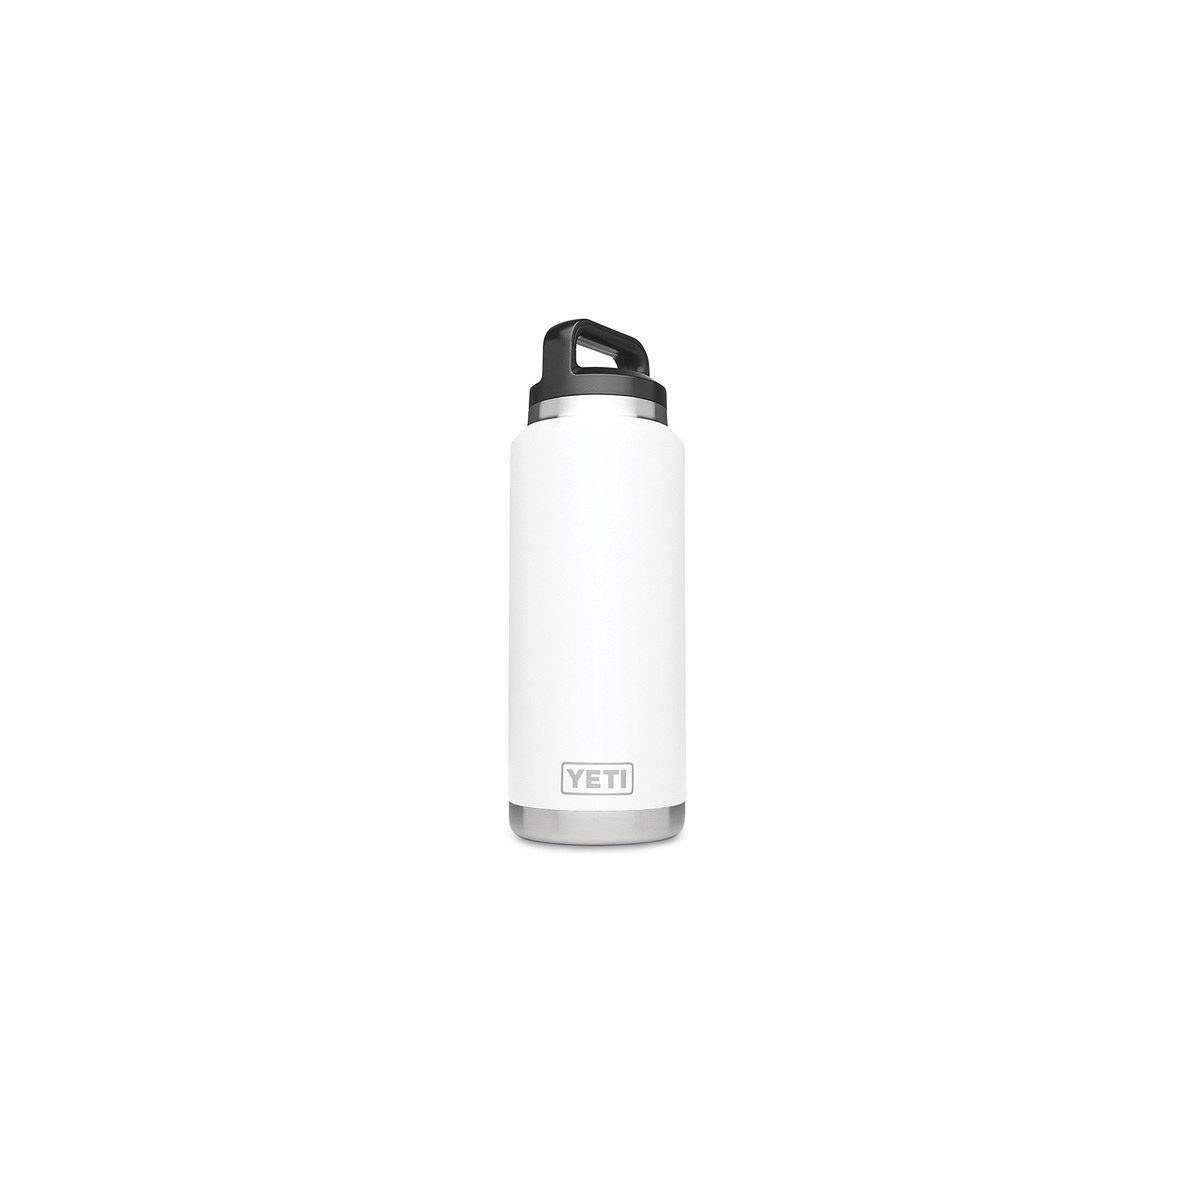 Picture of YETI Rambler 21071070008 Bottle, 36 oz Capacity, Stainless Steel, White